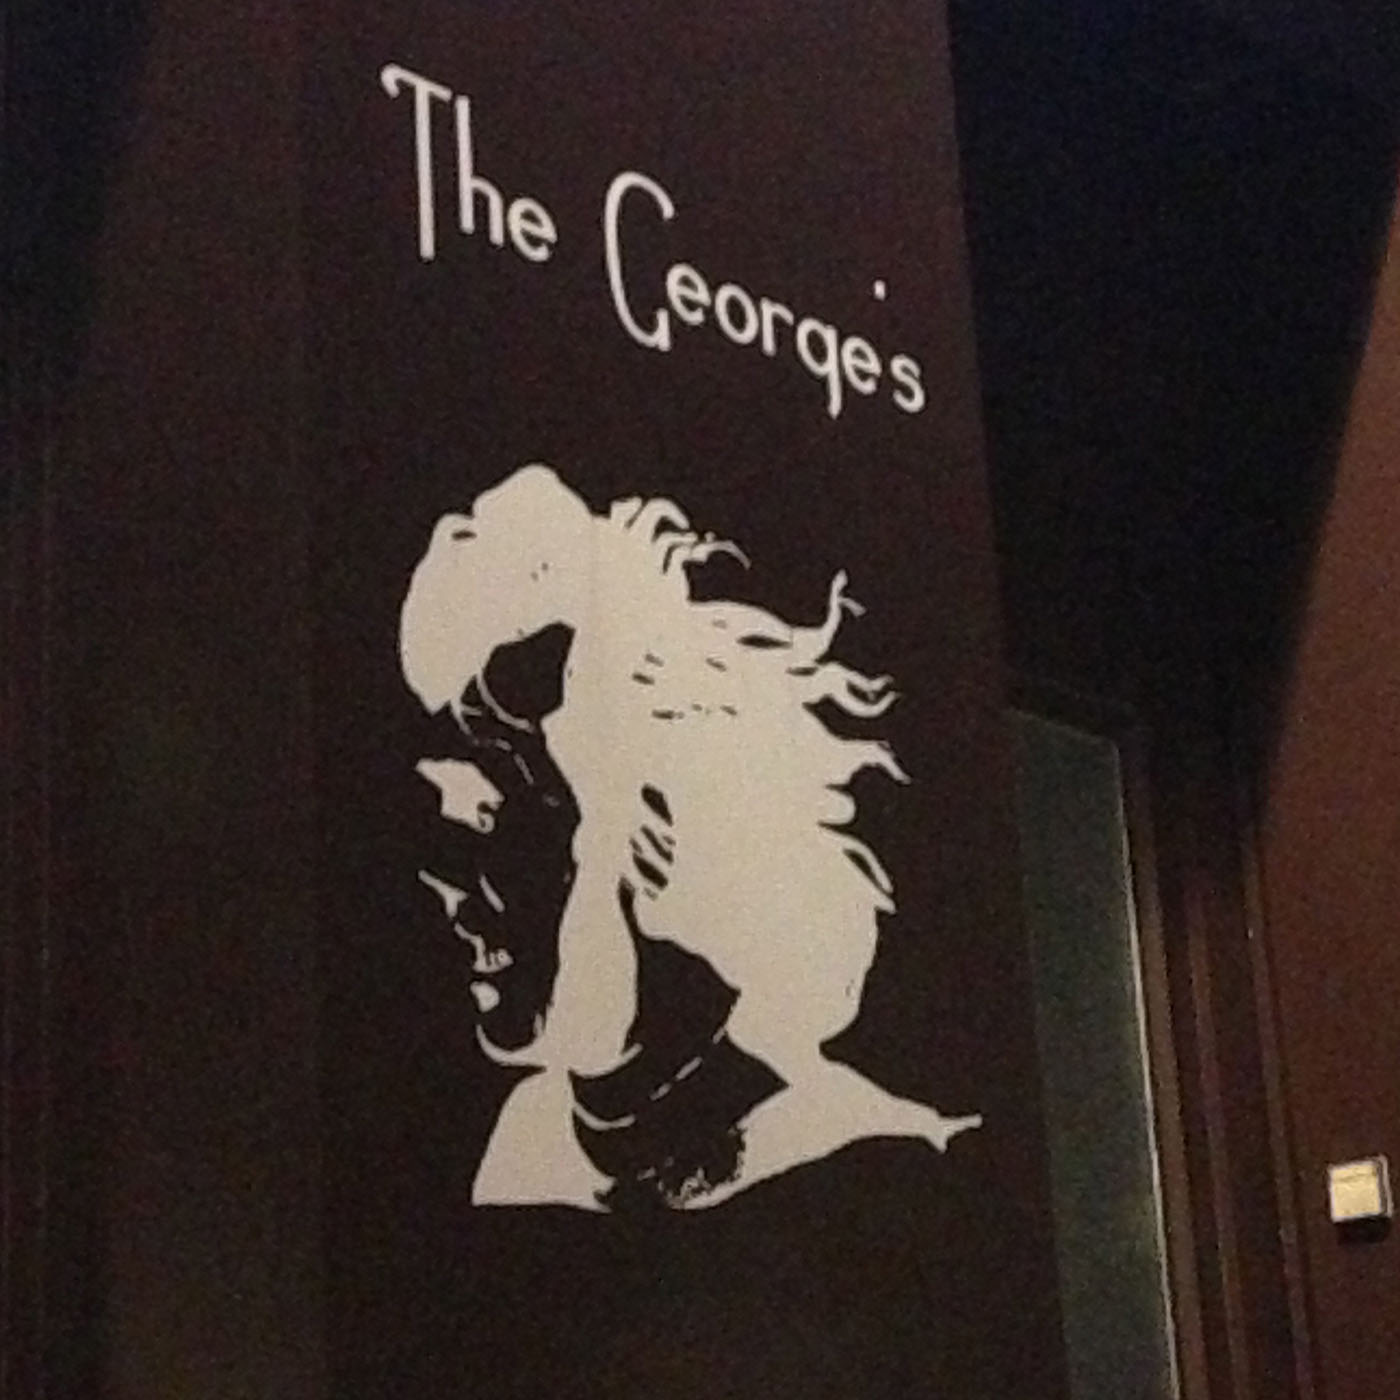 The George`s